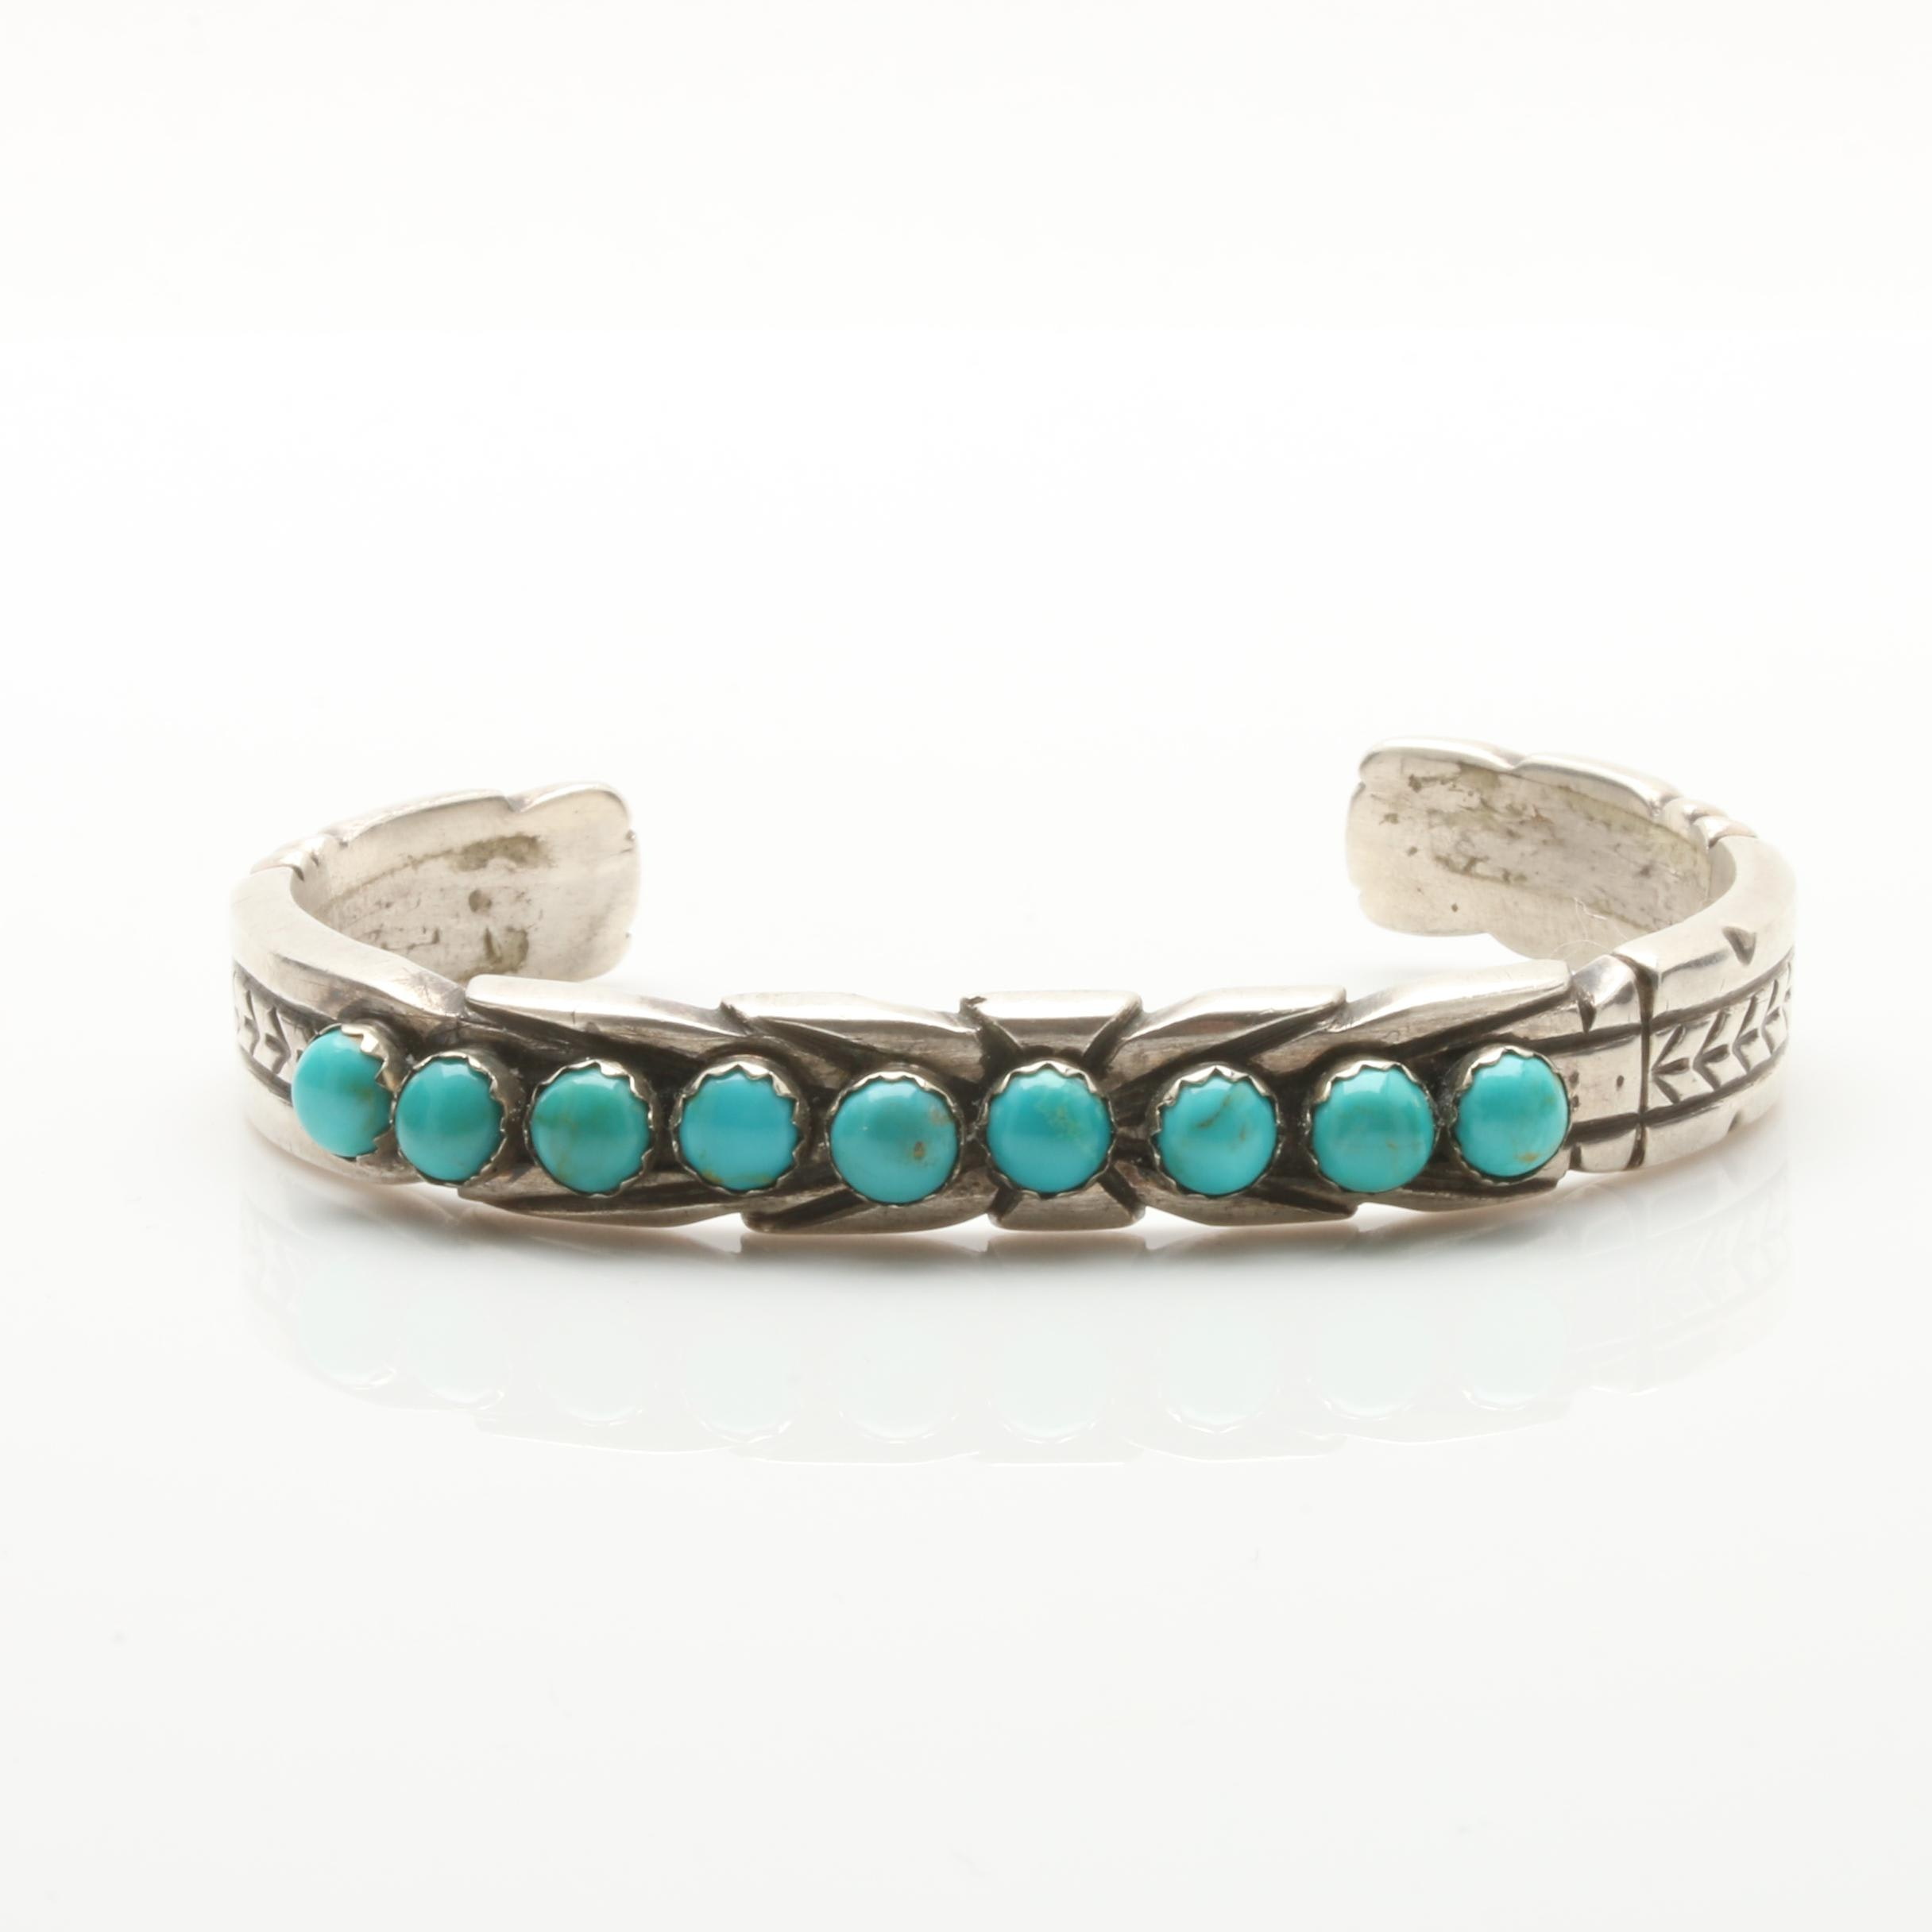 James Shay Navajo Diné Sterling Silver Turquoise Cuff Bracelet